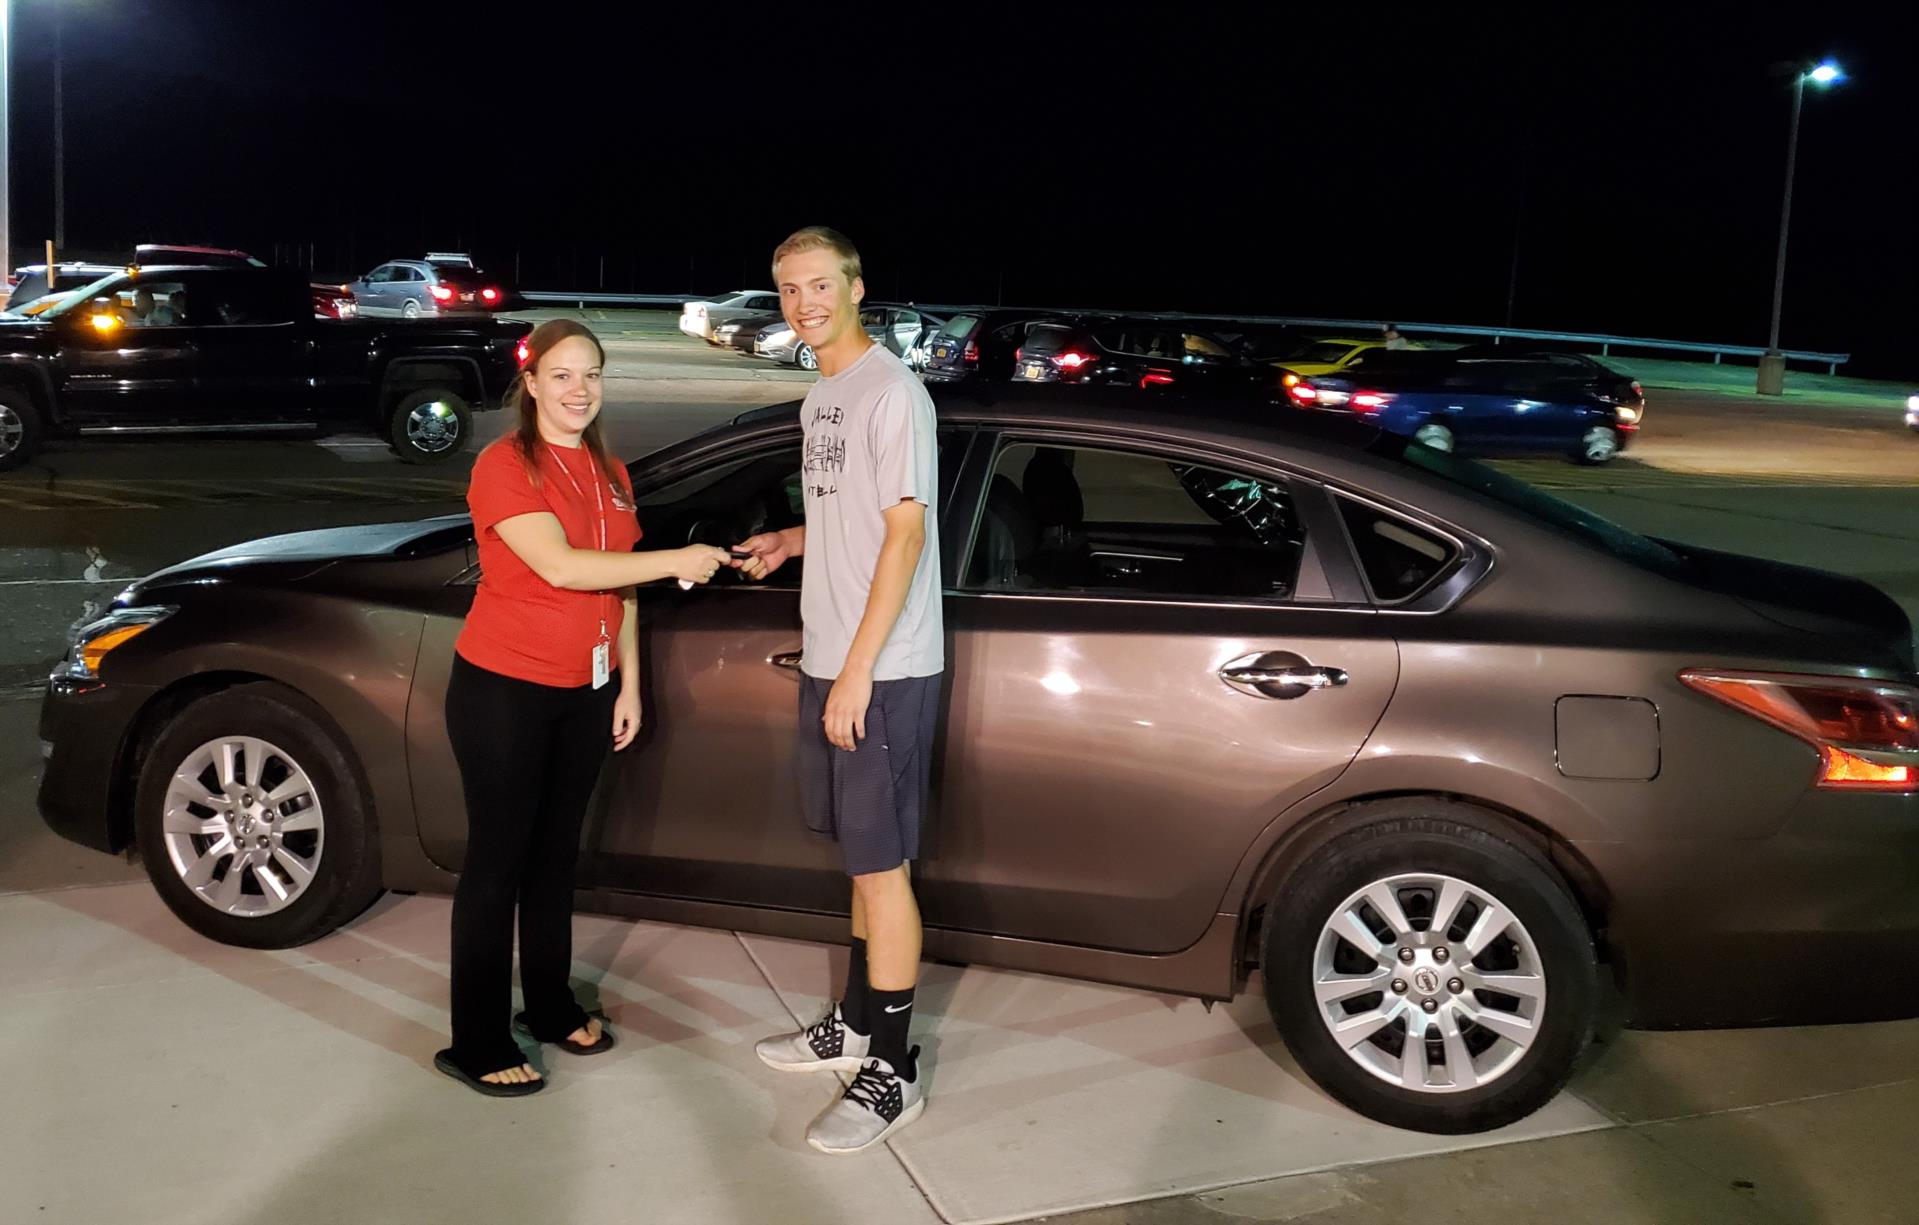 student being handed keys to car